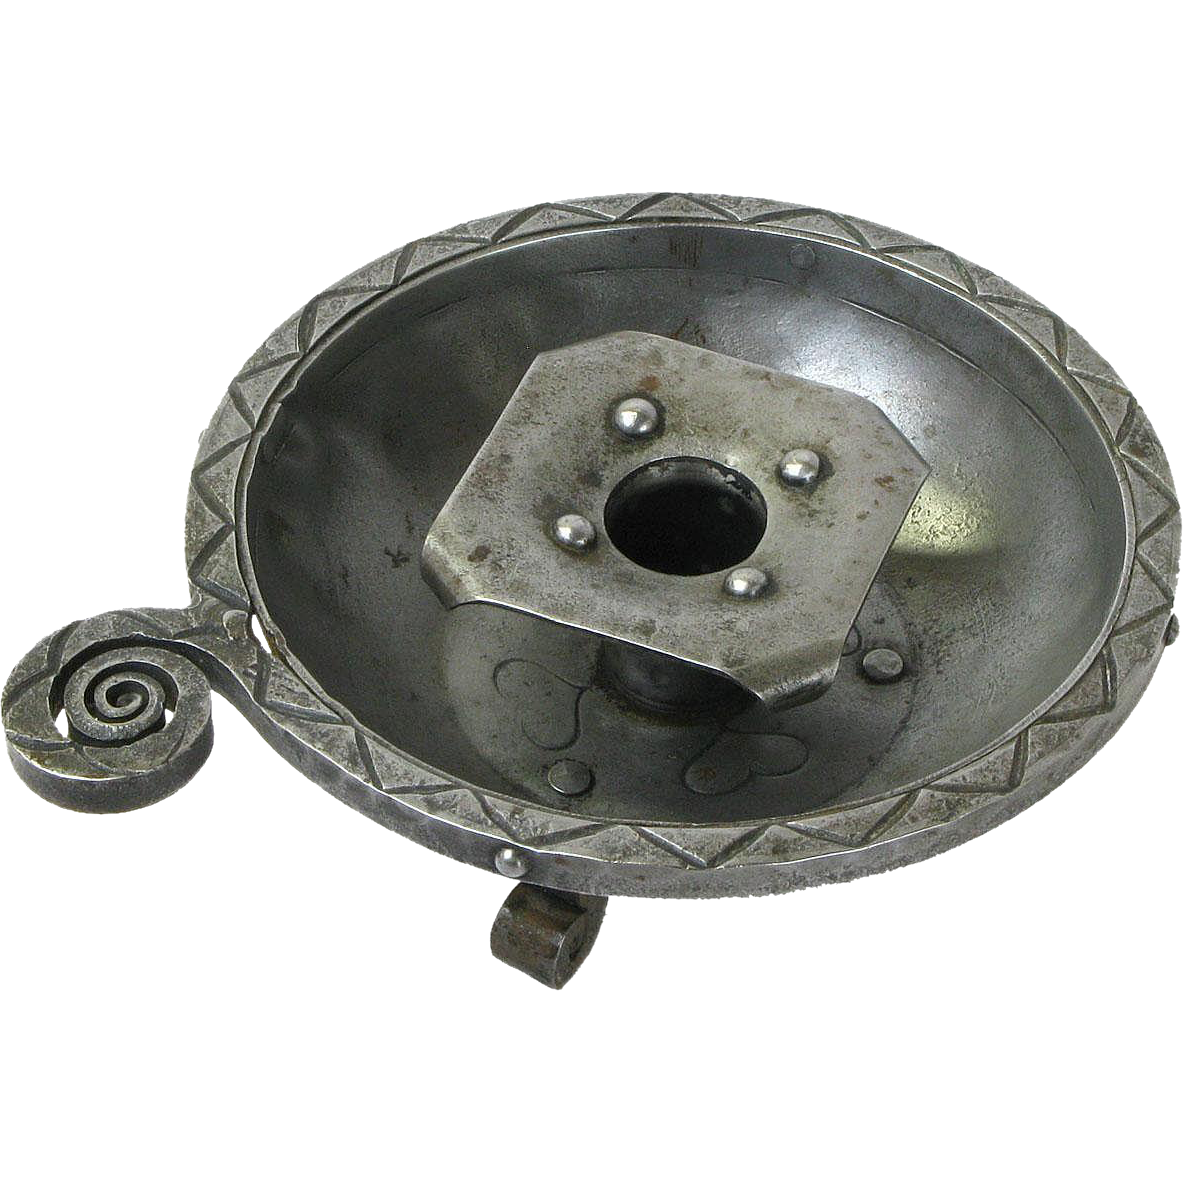 Goberg Hammered Iron Tabletop Ashtray Candlestick, Signed,Ca. 1900